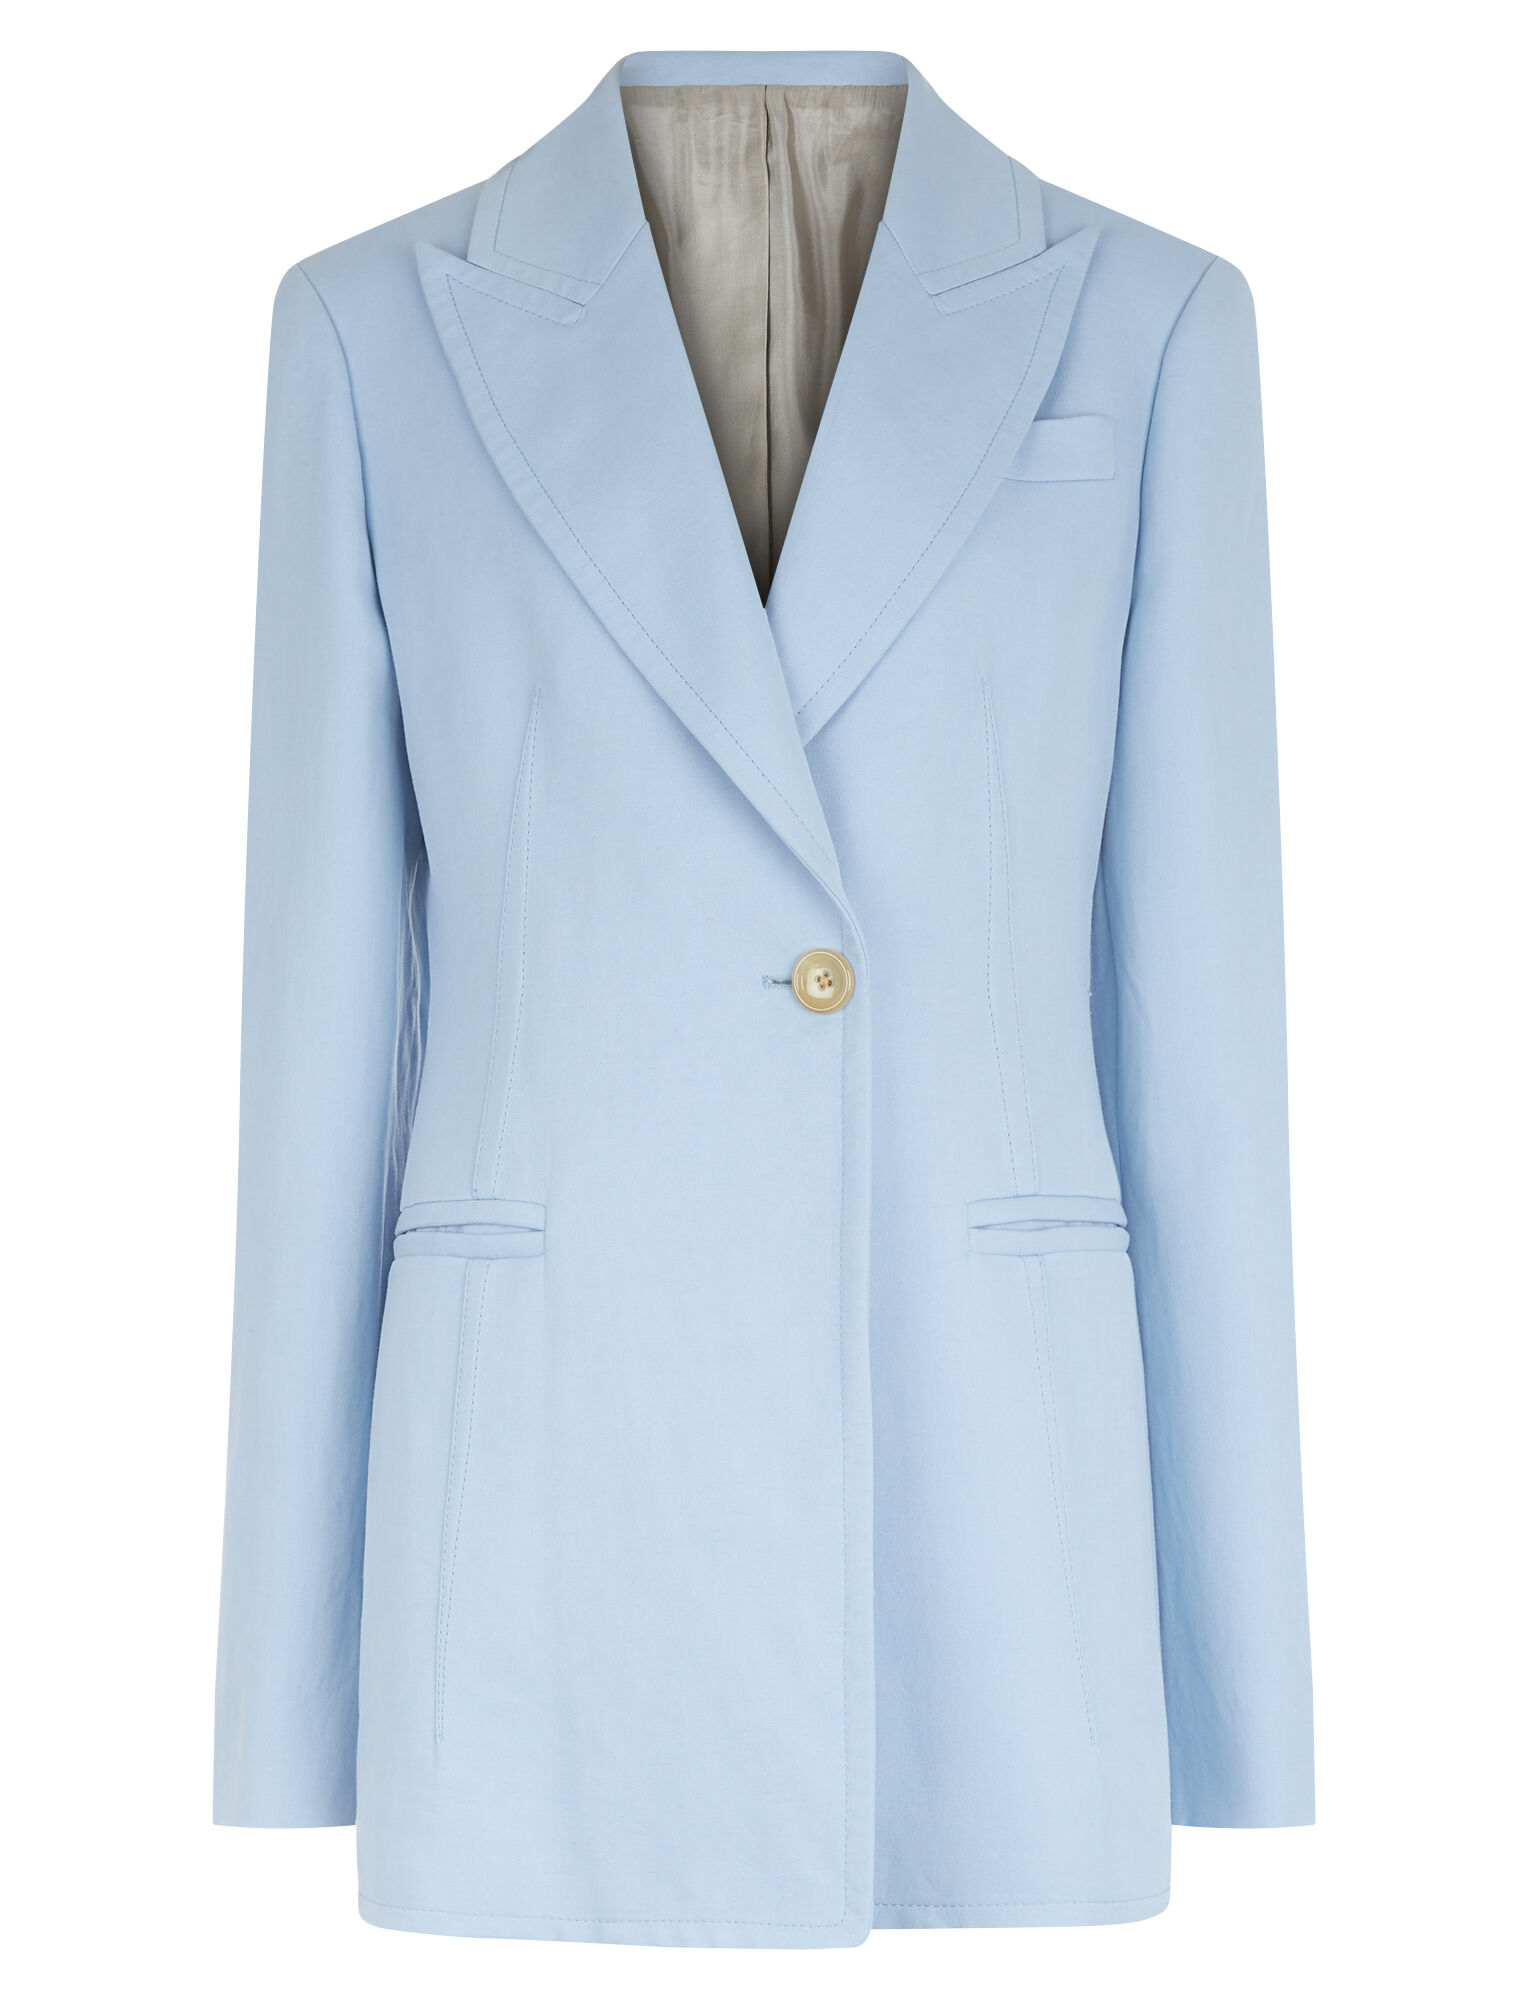 Joseph, Hampson Ramie Cotton Jacket, in PERIWINKLE